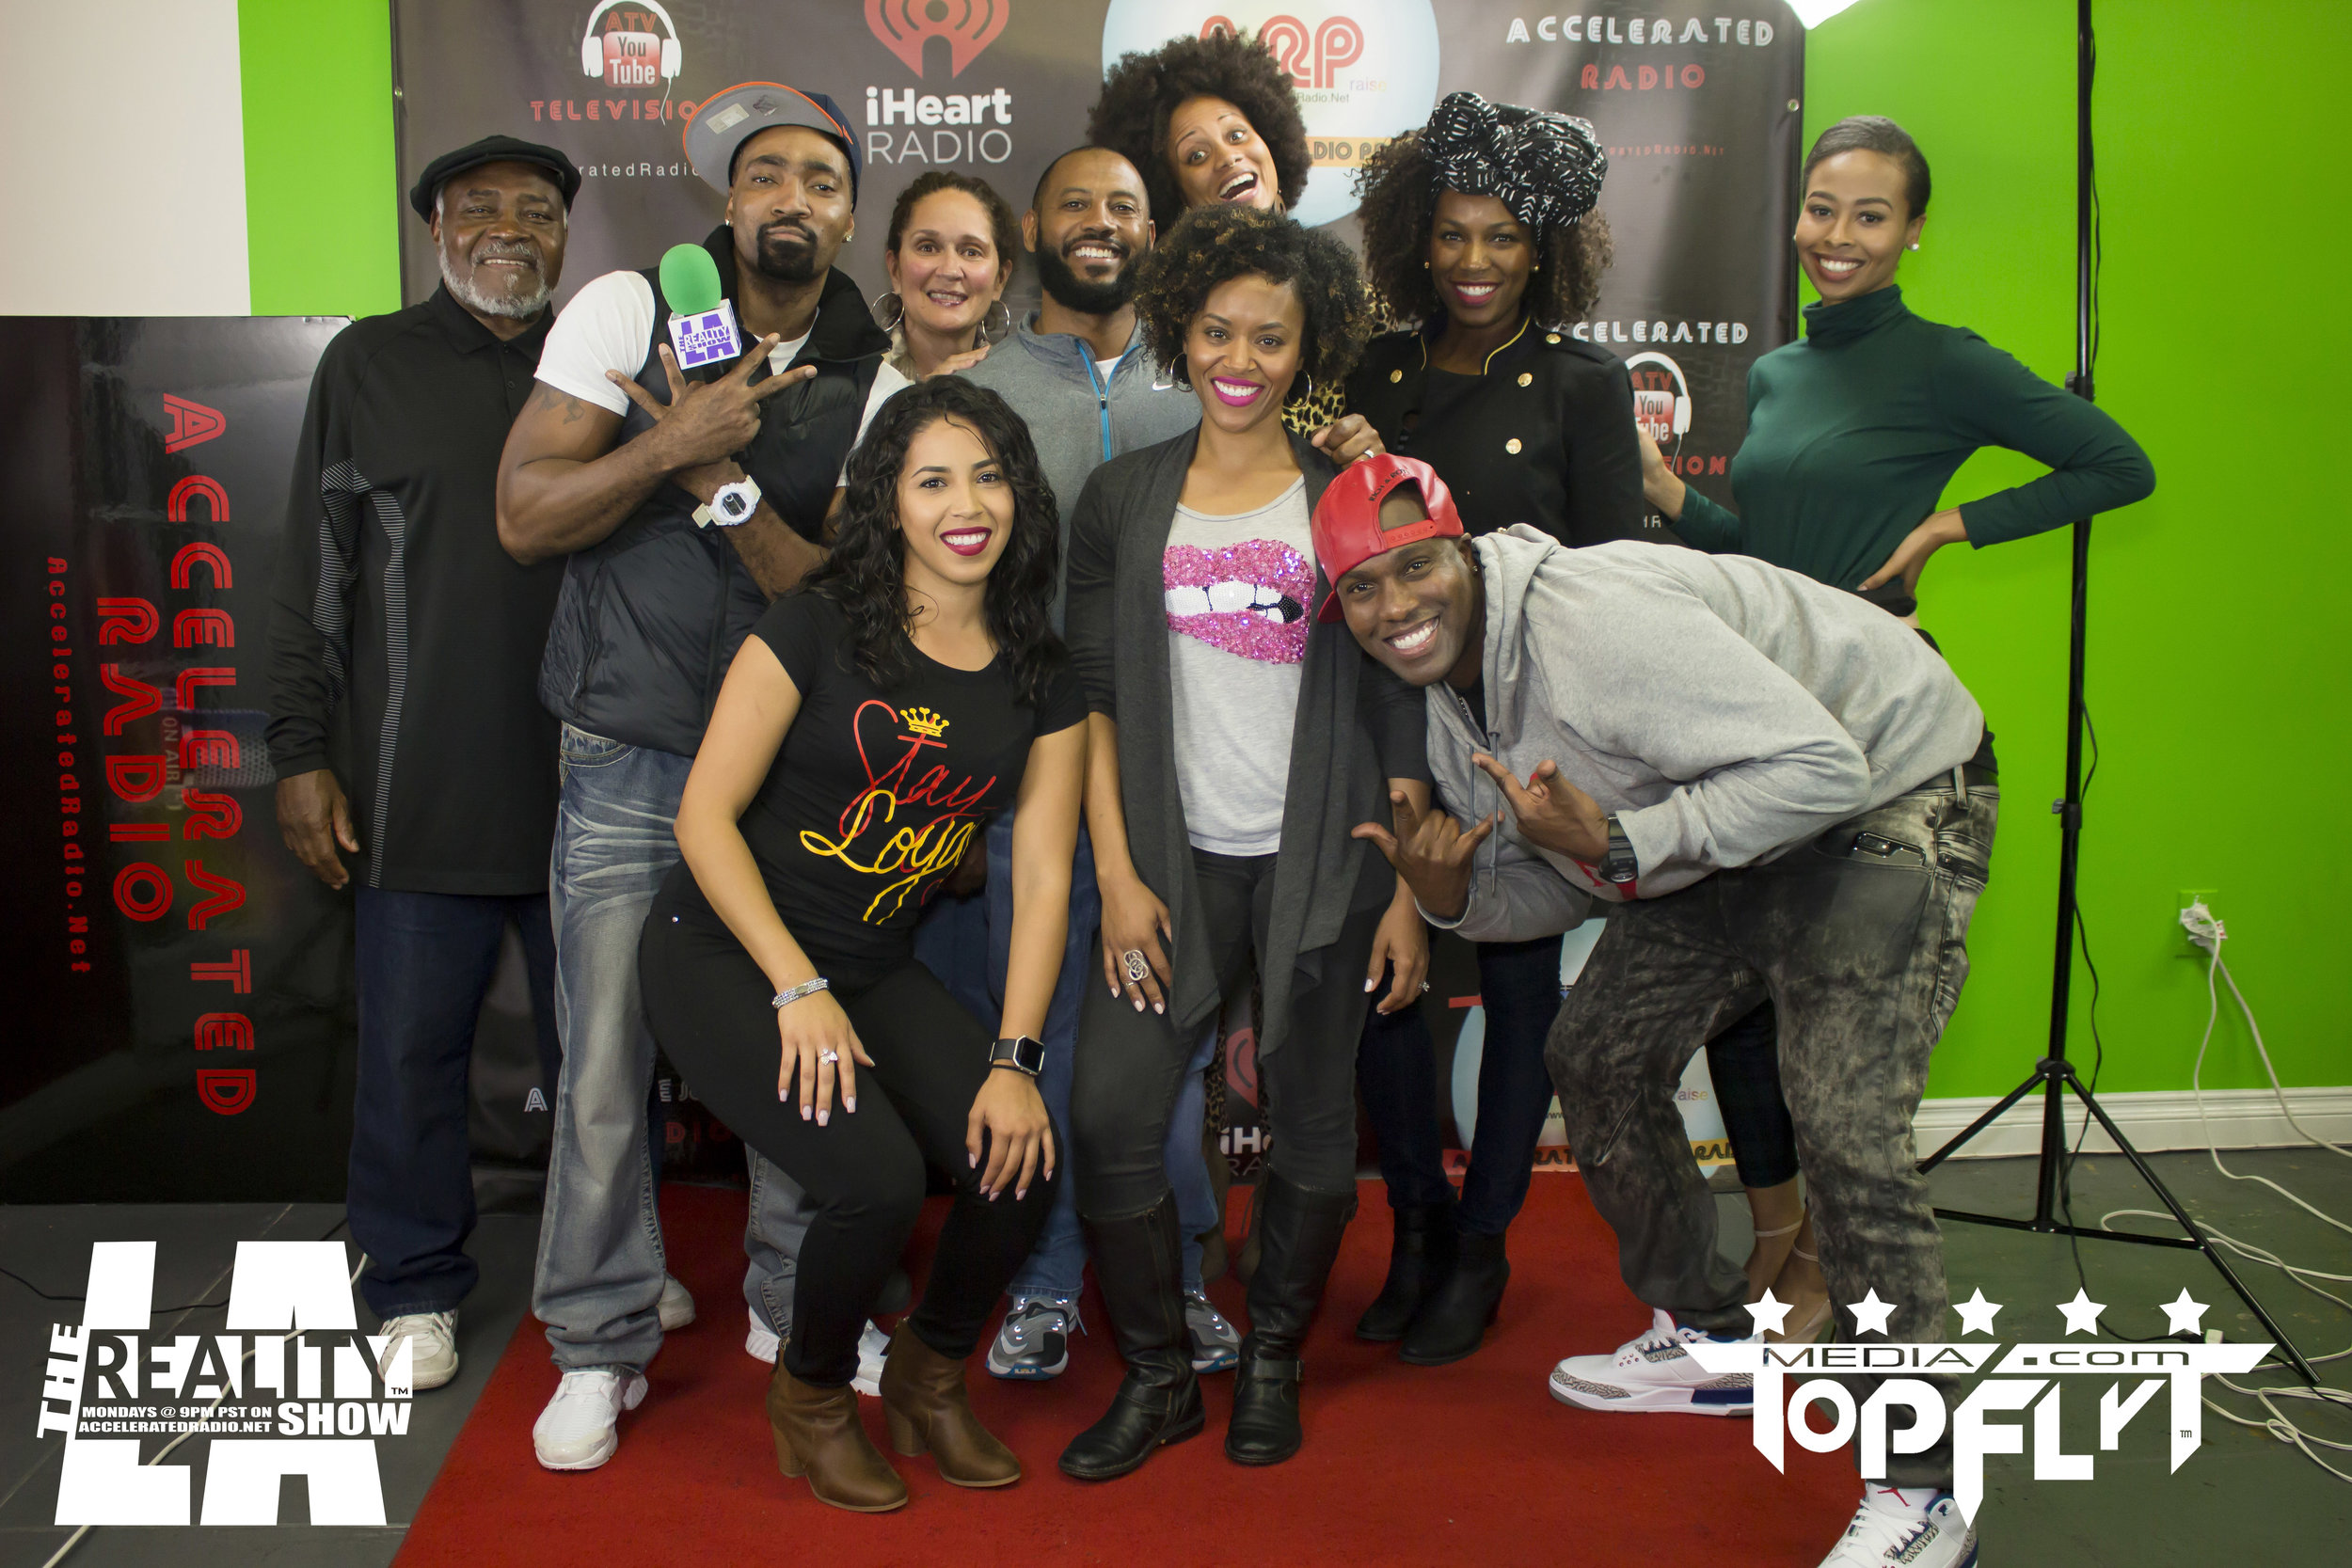 The Reality Show LA ft. Cast of FunnyMarriedStuff And Raquel Harris - 01-16-17_49.jpg